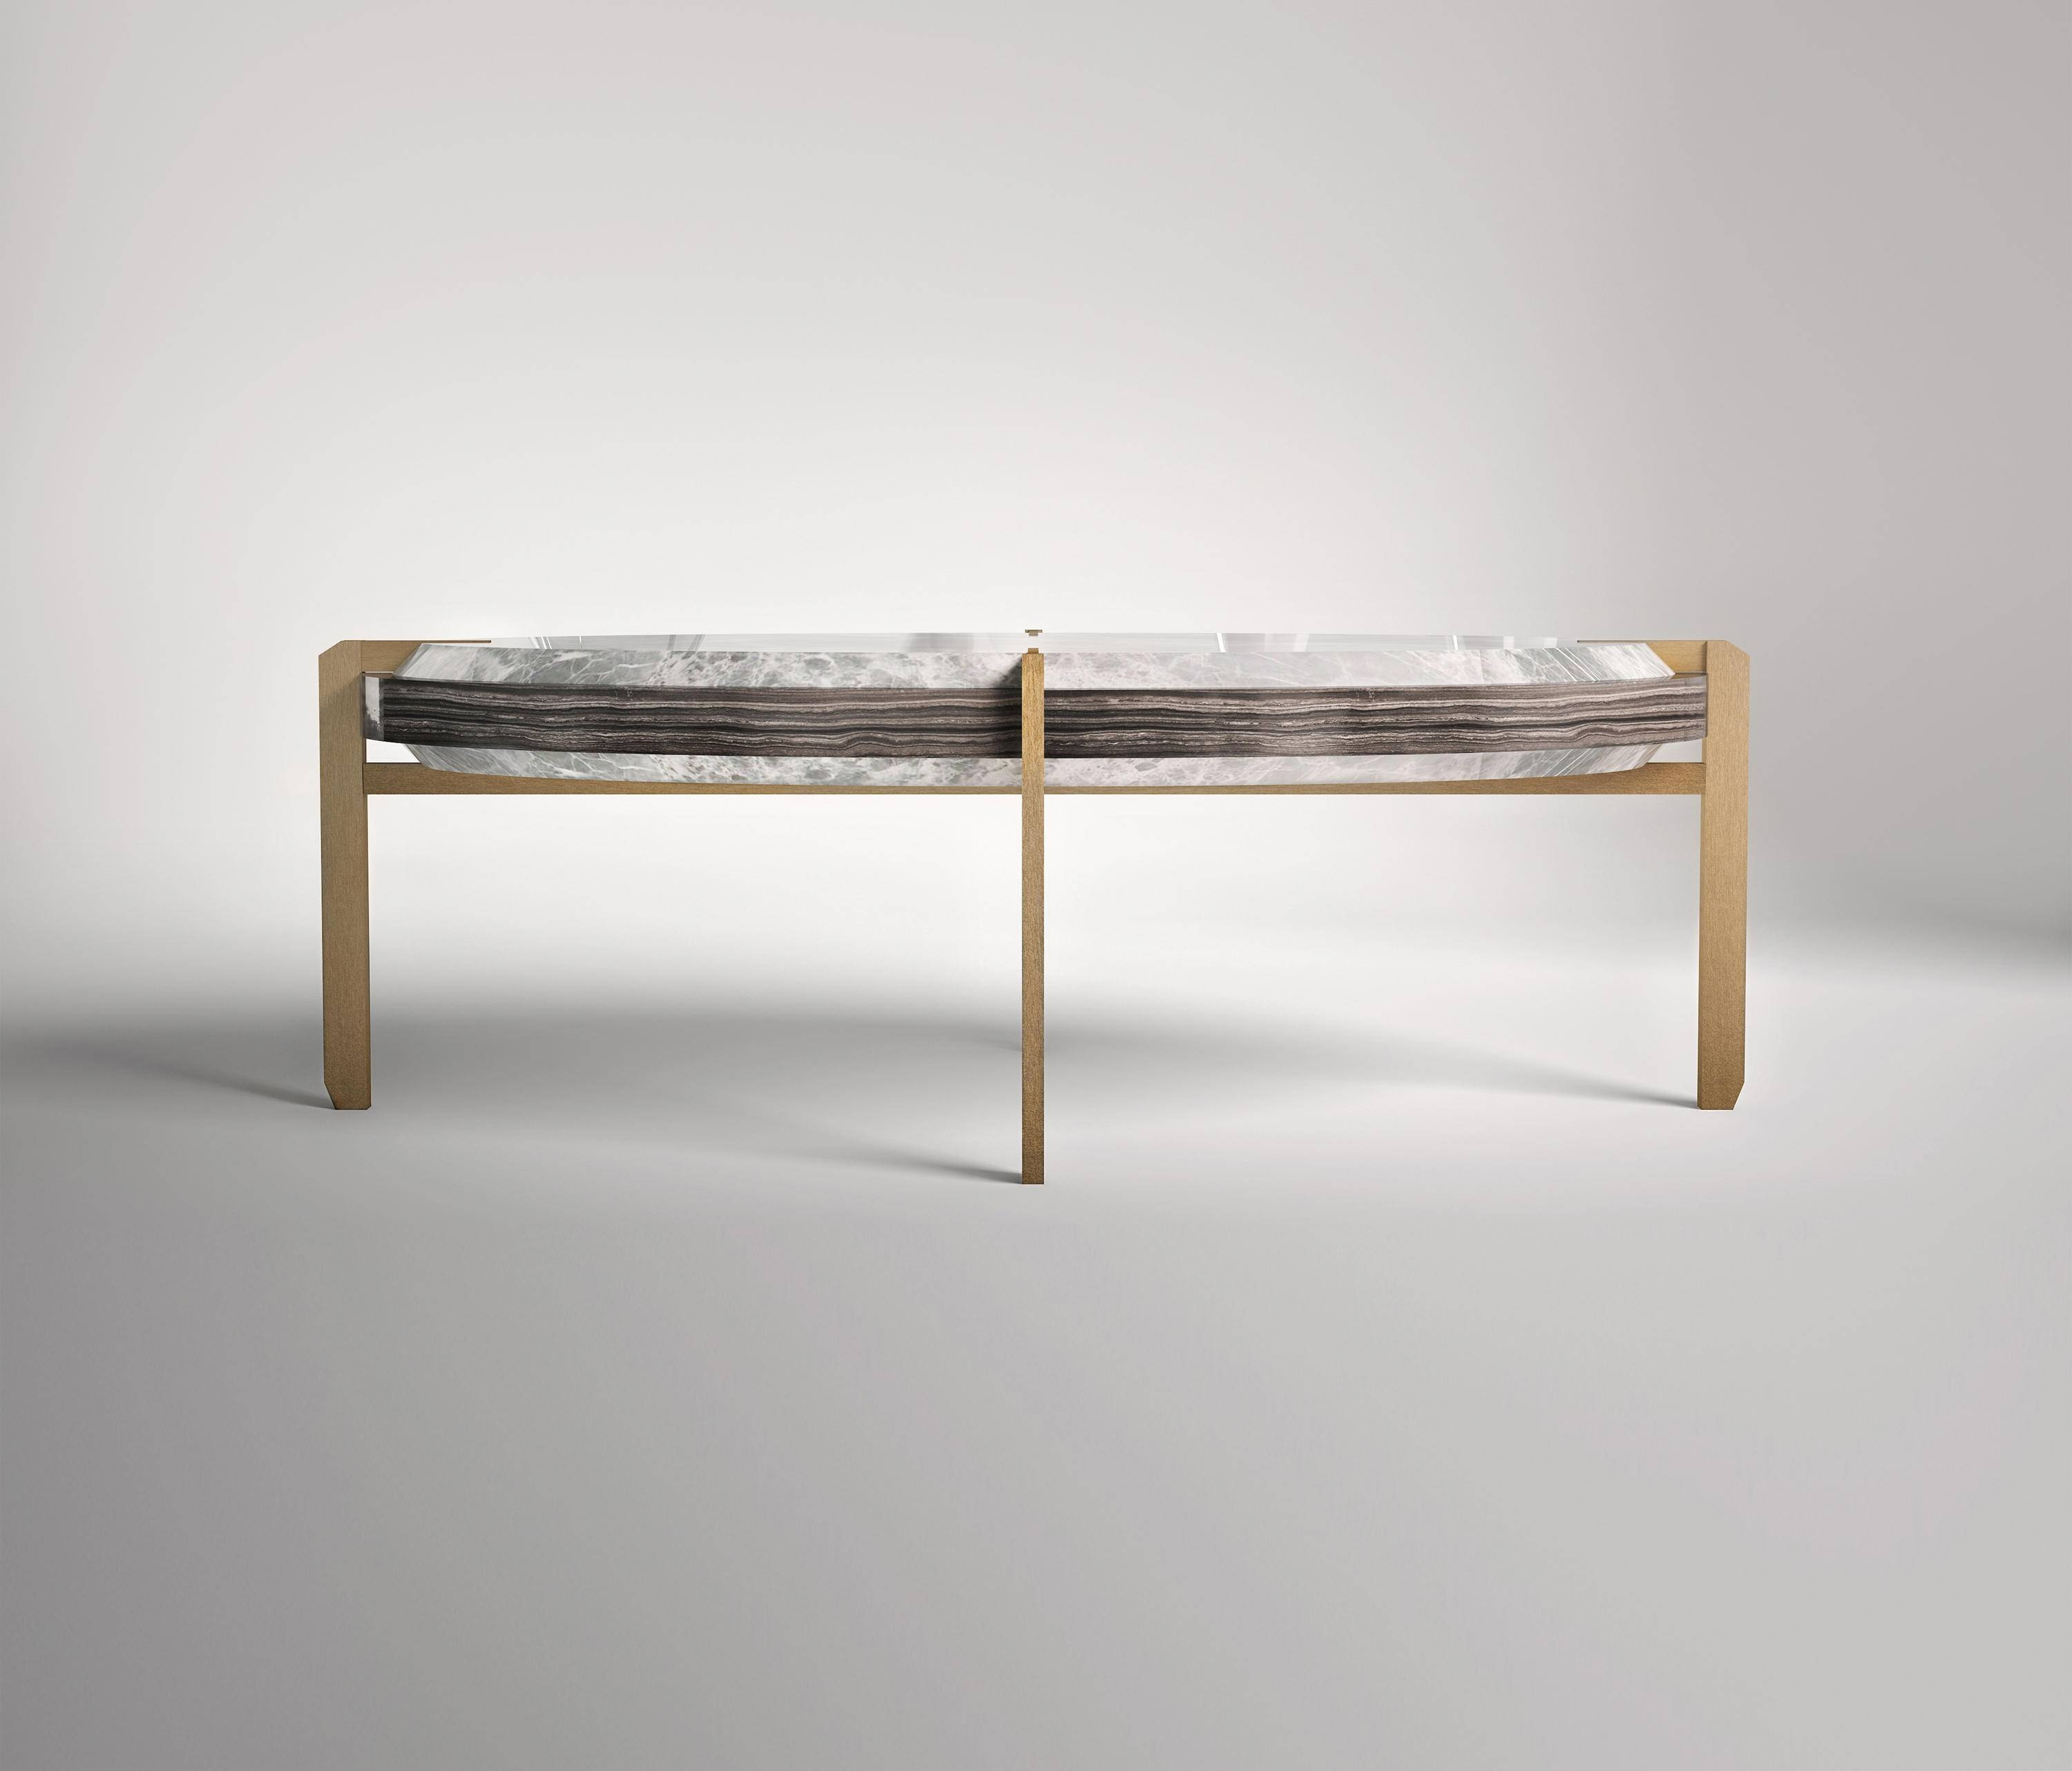 Soho Coffee Table - Lounge Tables From Rossato | Architonic intended for Soho Coffee Tables (Image 20 of 30)